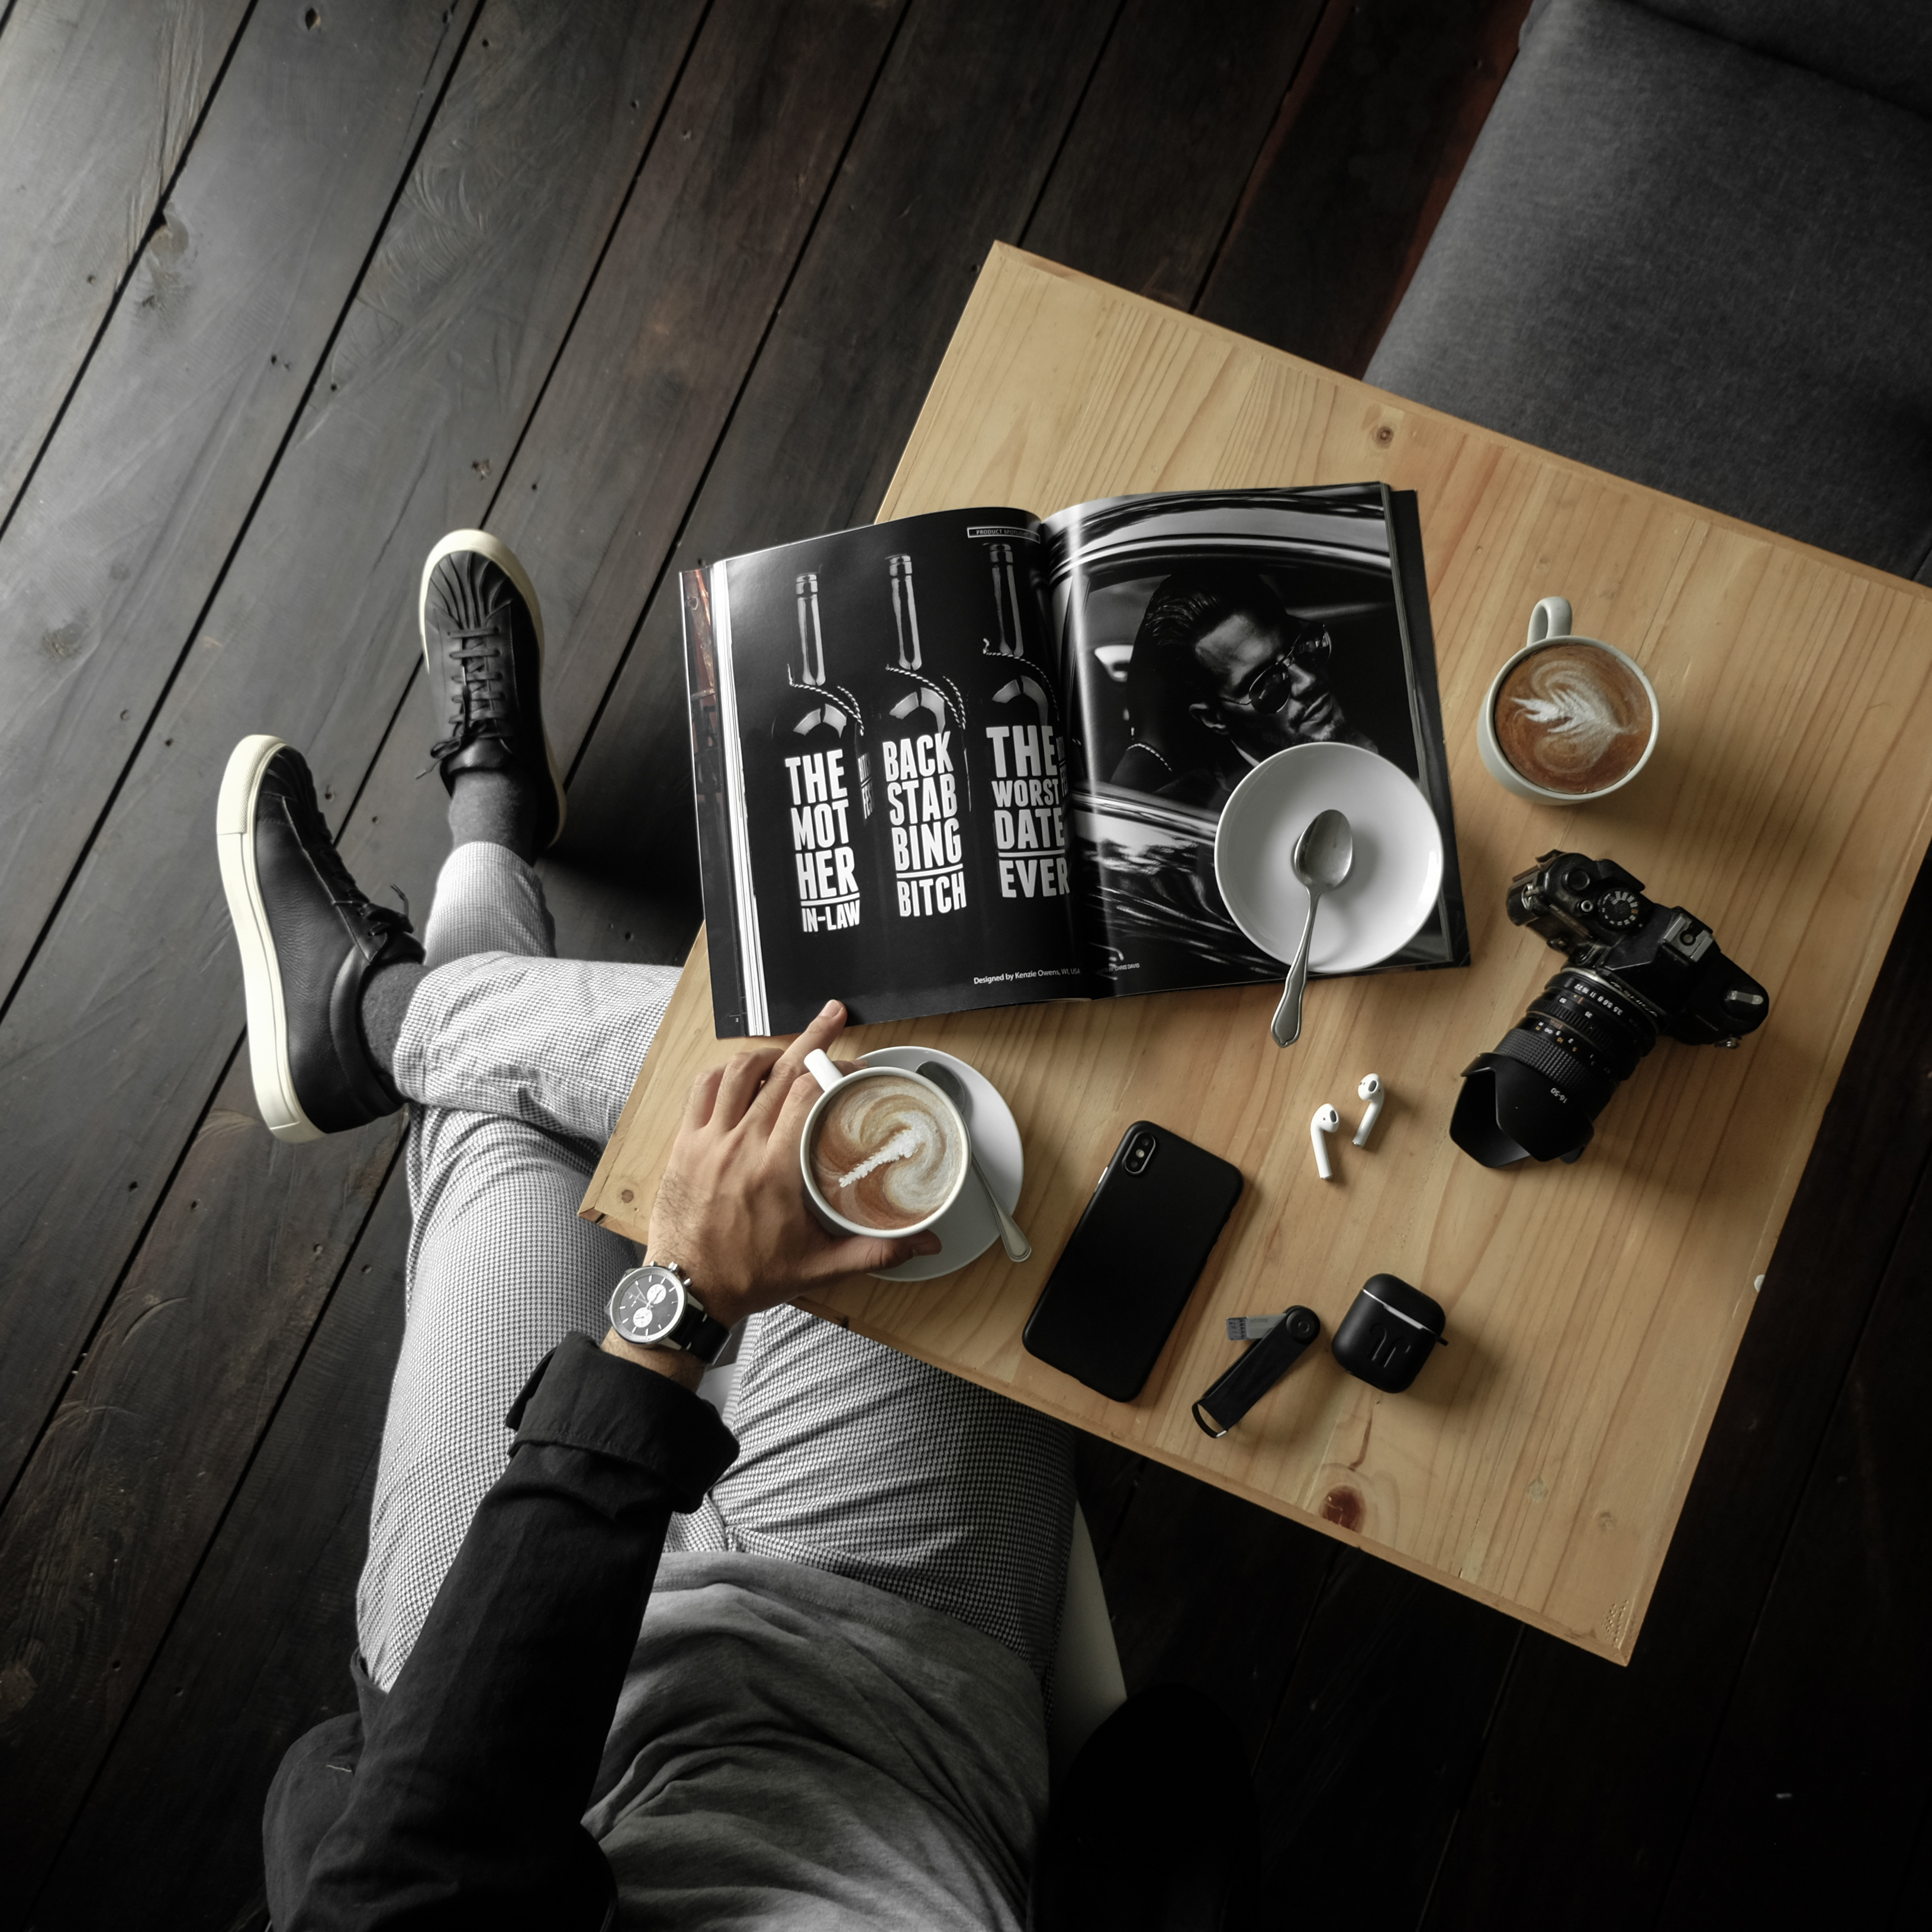 Top View Of A Table With Man Holding A Cup Of Latte With A Magazine, Camera, Cellphone And Other Personal Effects